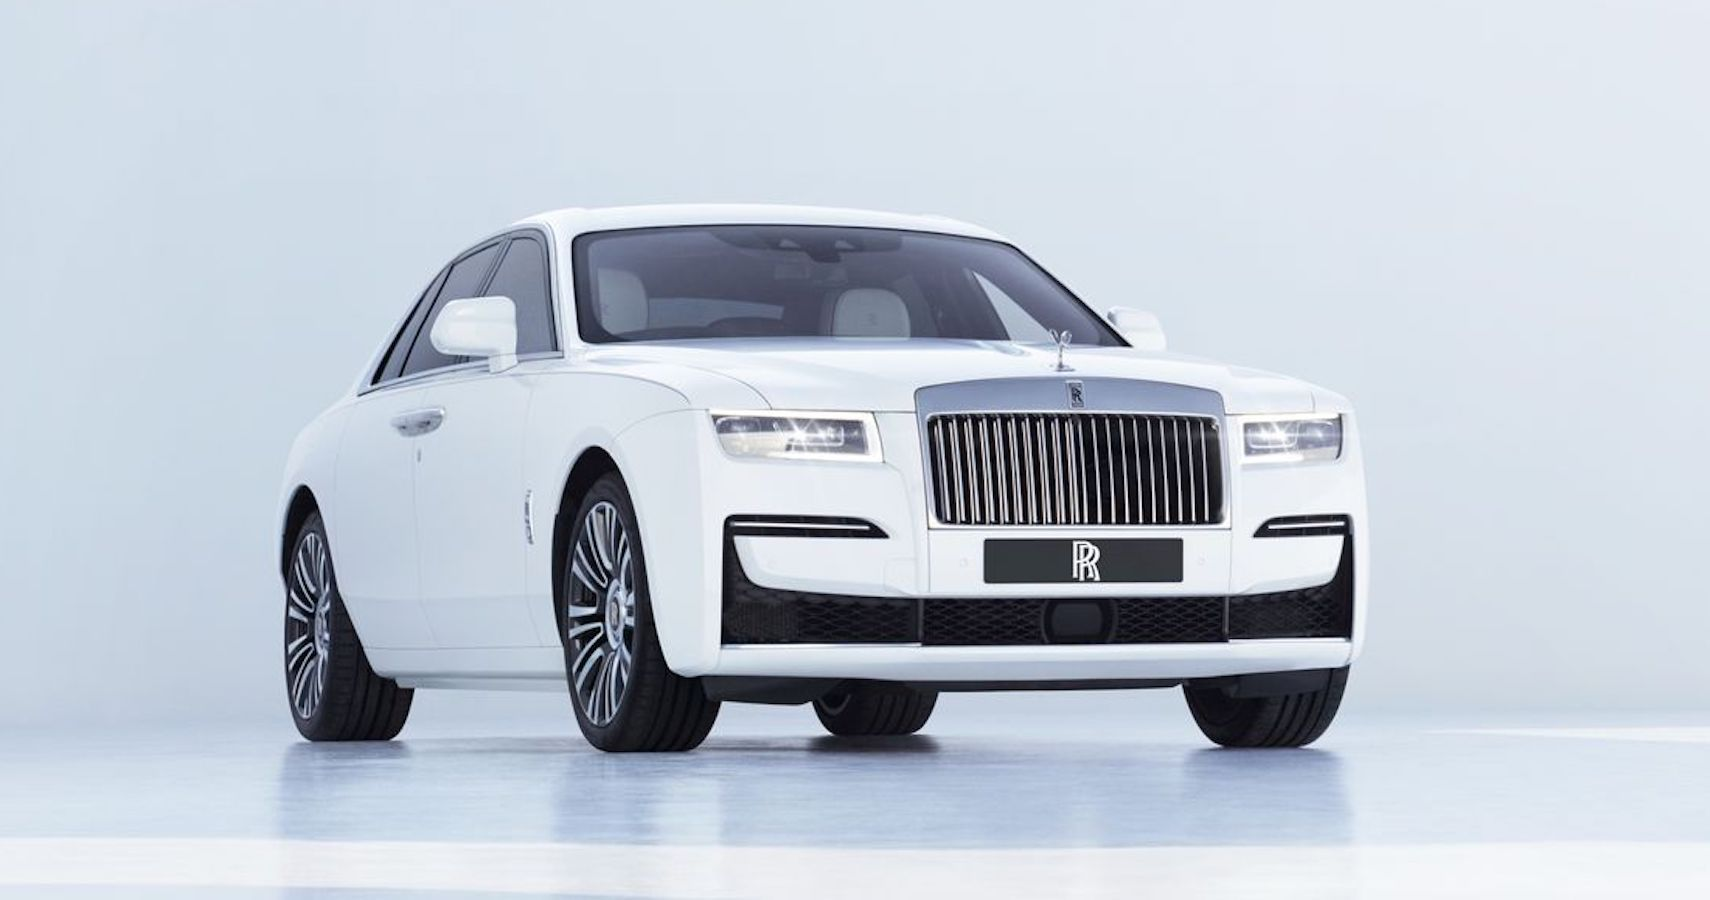 The 2021 Rolls-Royce Ghost Offers Refined Simplicity And Insane Technology